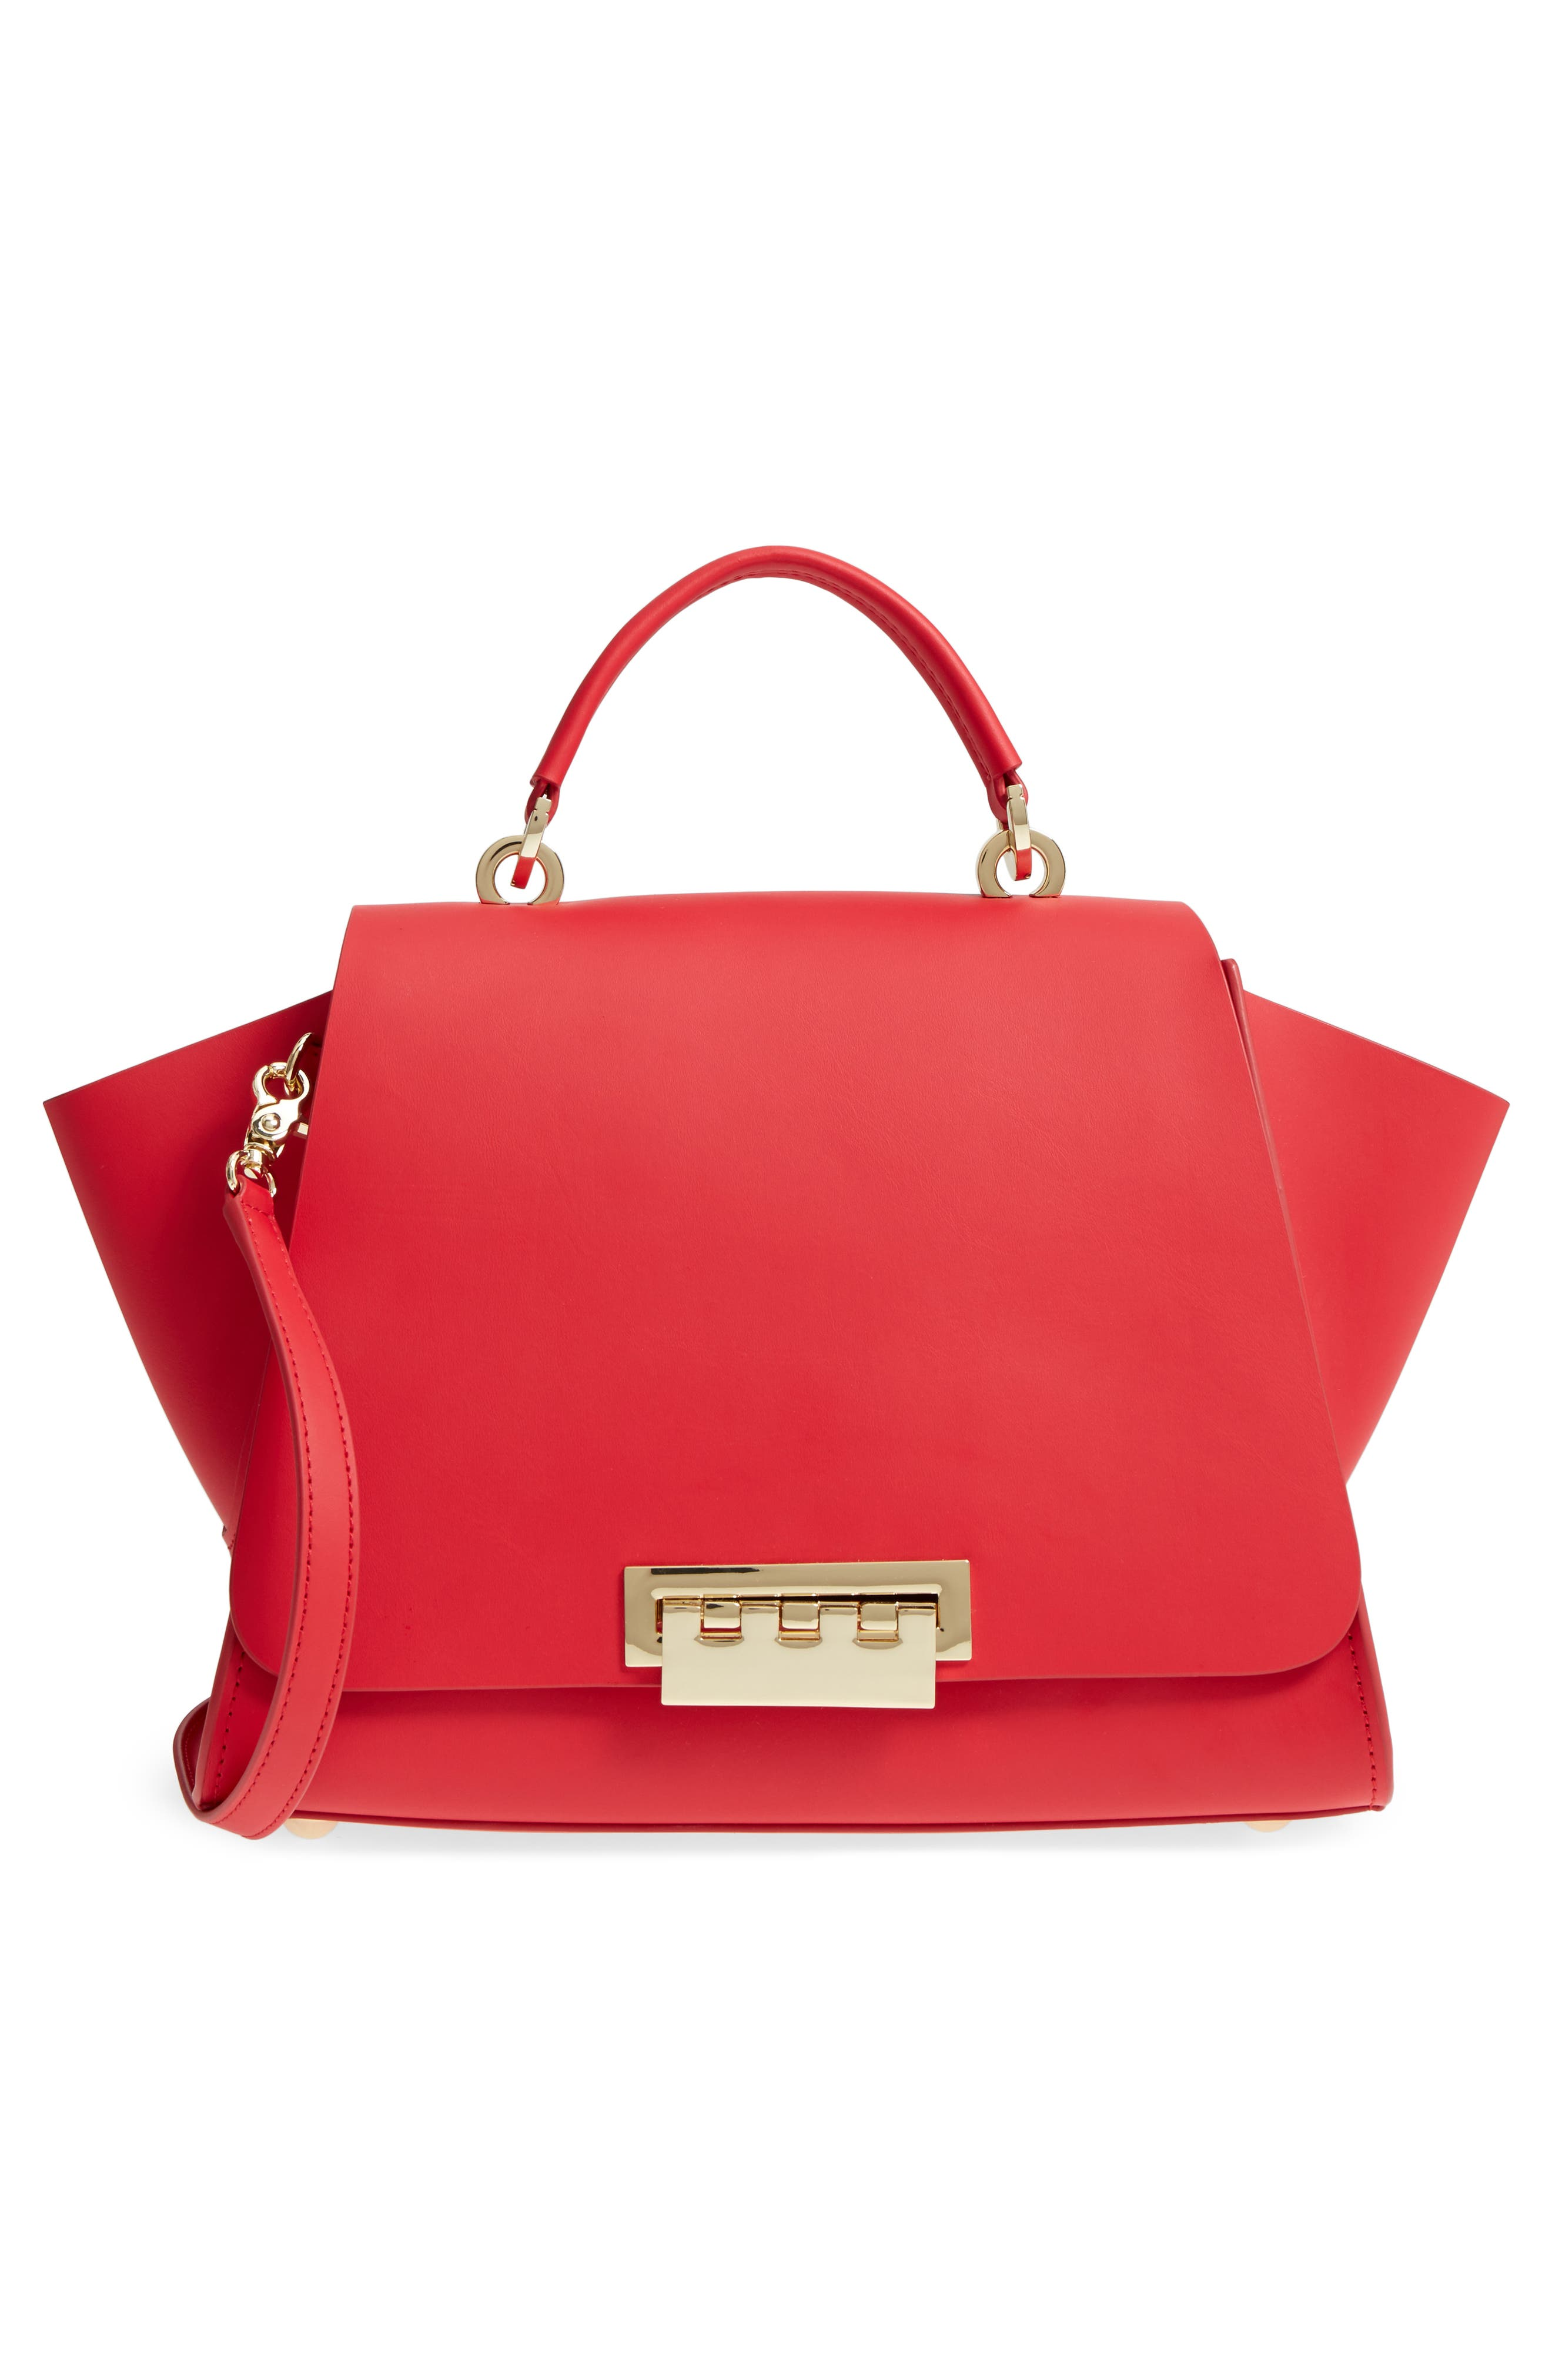 Eartha Iconic Calfskin Leather Top Handle Satchel,                             Alternate thumbnail 7, color,                             Red